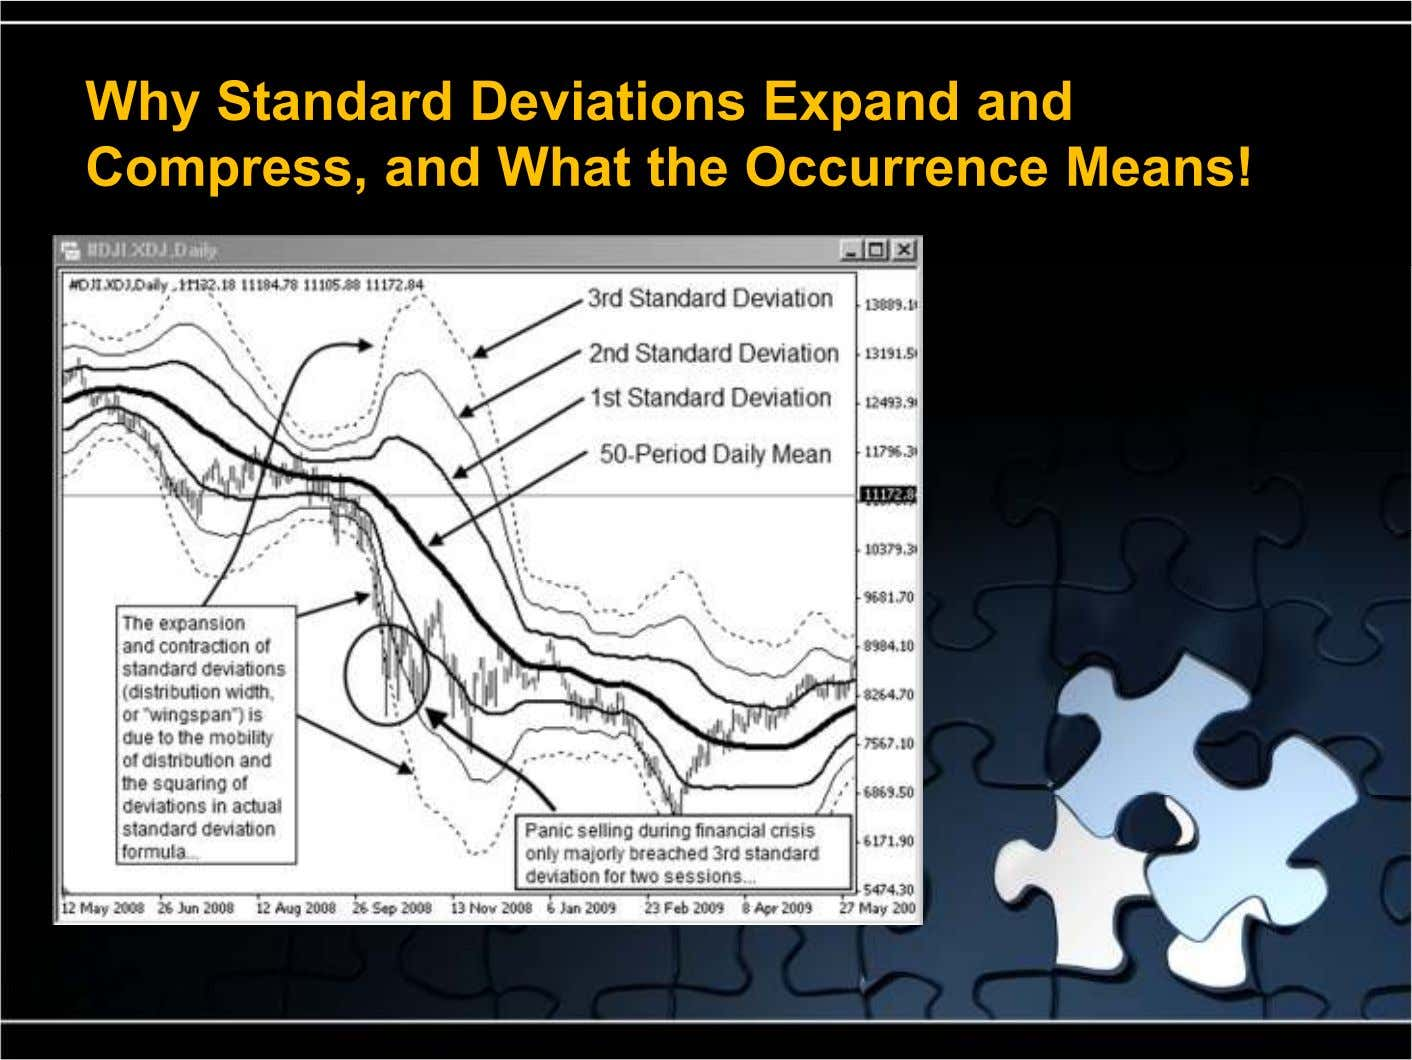 Why Standard Deviations Expand and Compress, and What the Occurrence Means!